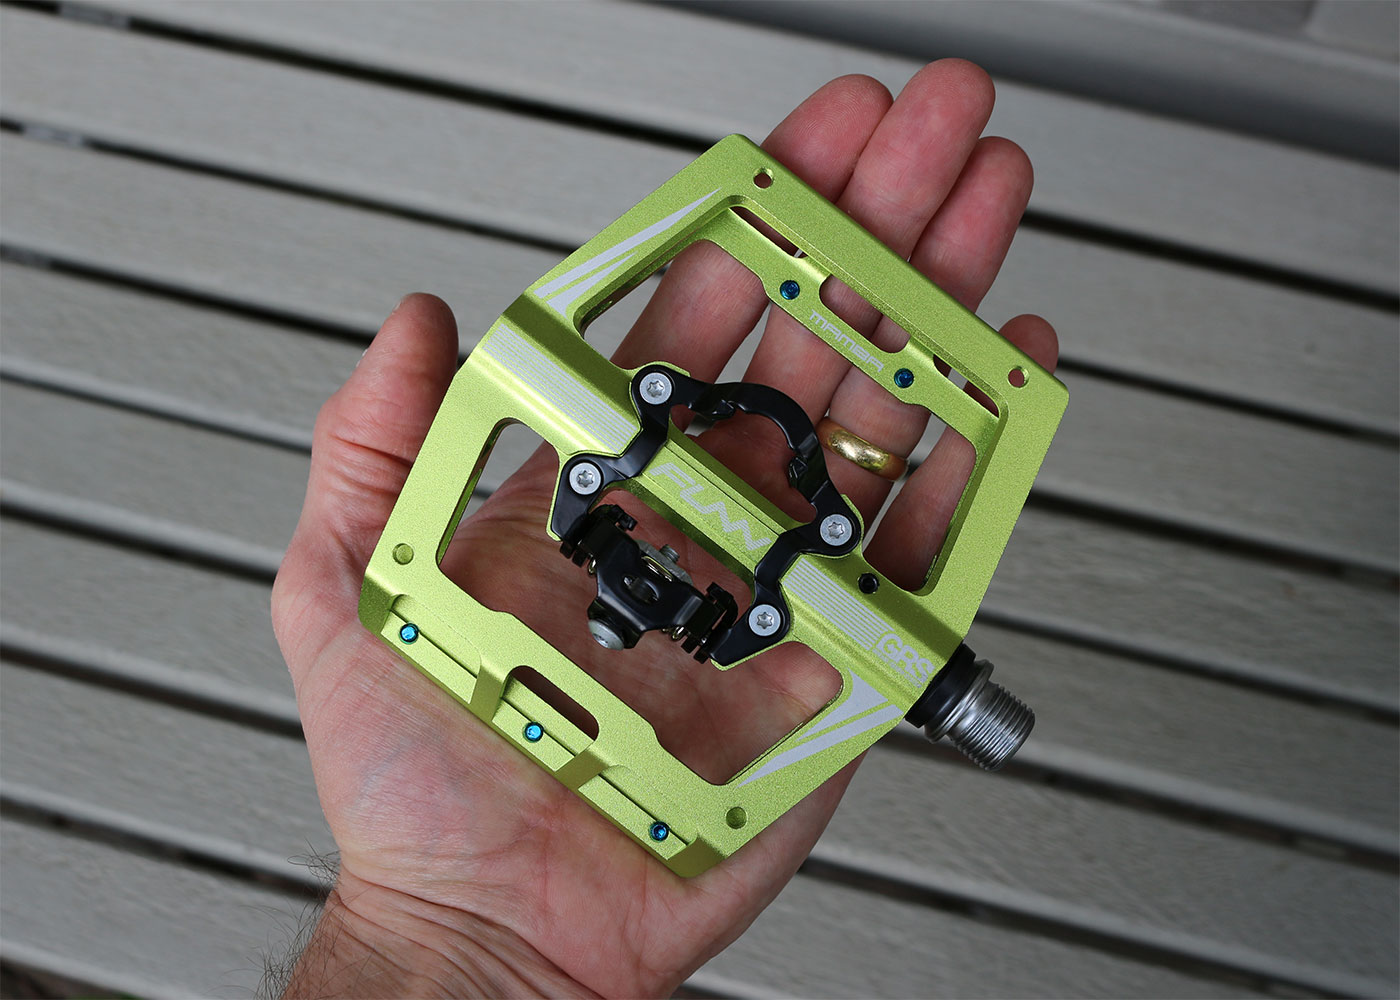 Funn Mamba clipless pedals in hand